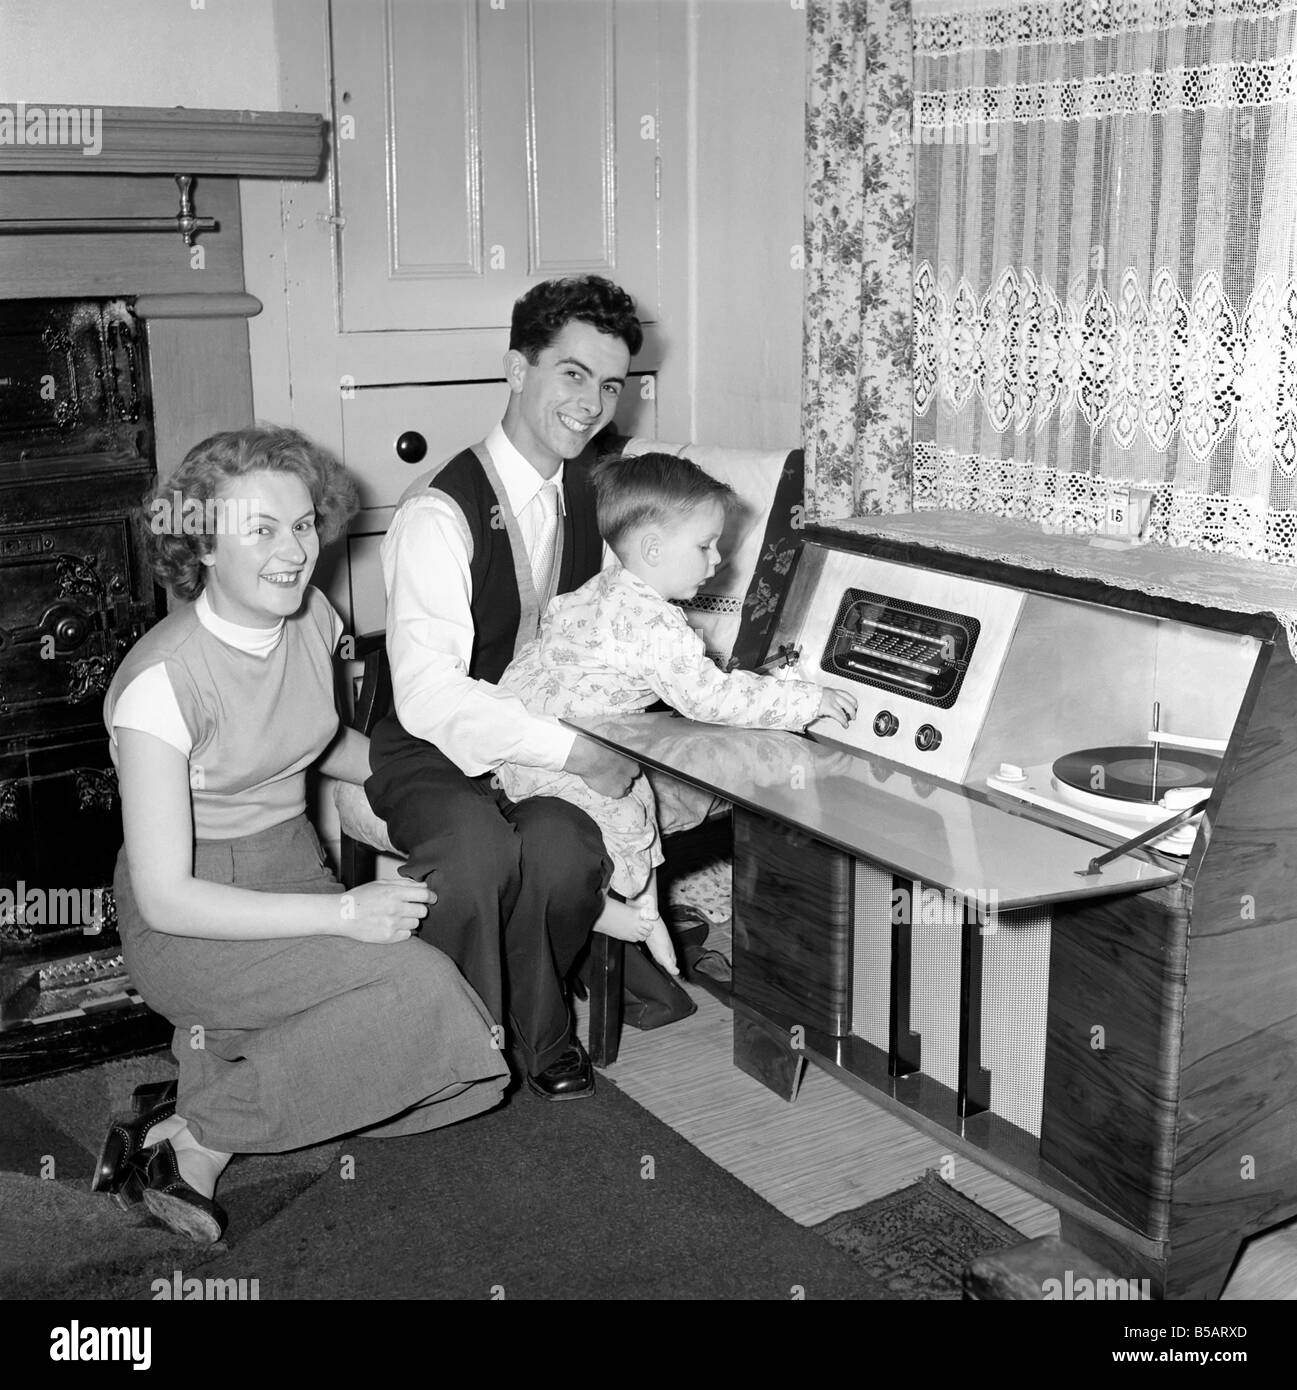 Family life: Mr. and Mrs. Hull with their son. 1954 A160-010 - Stock Image